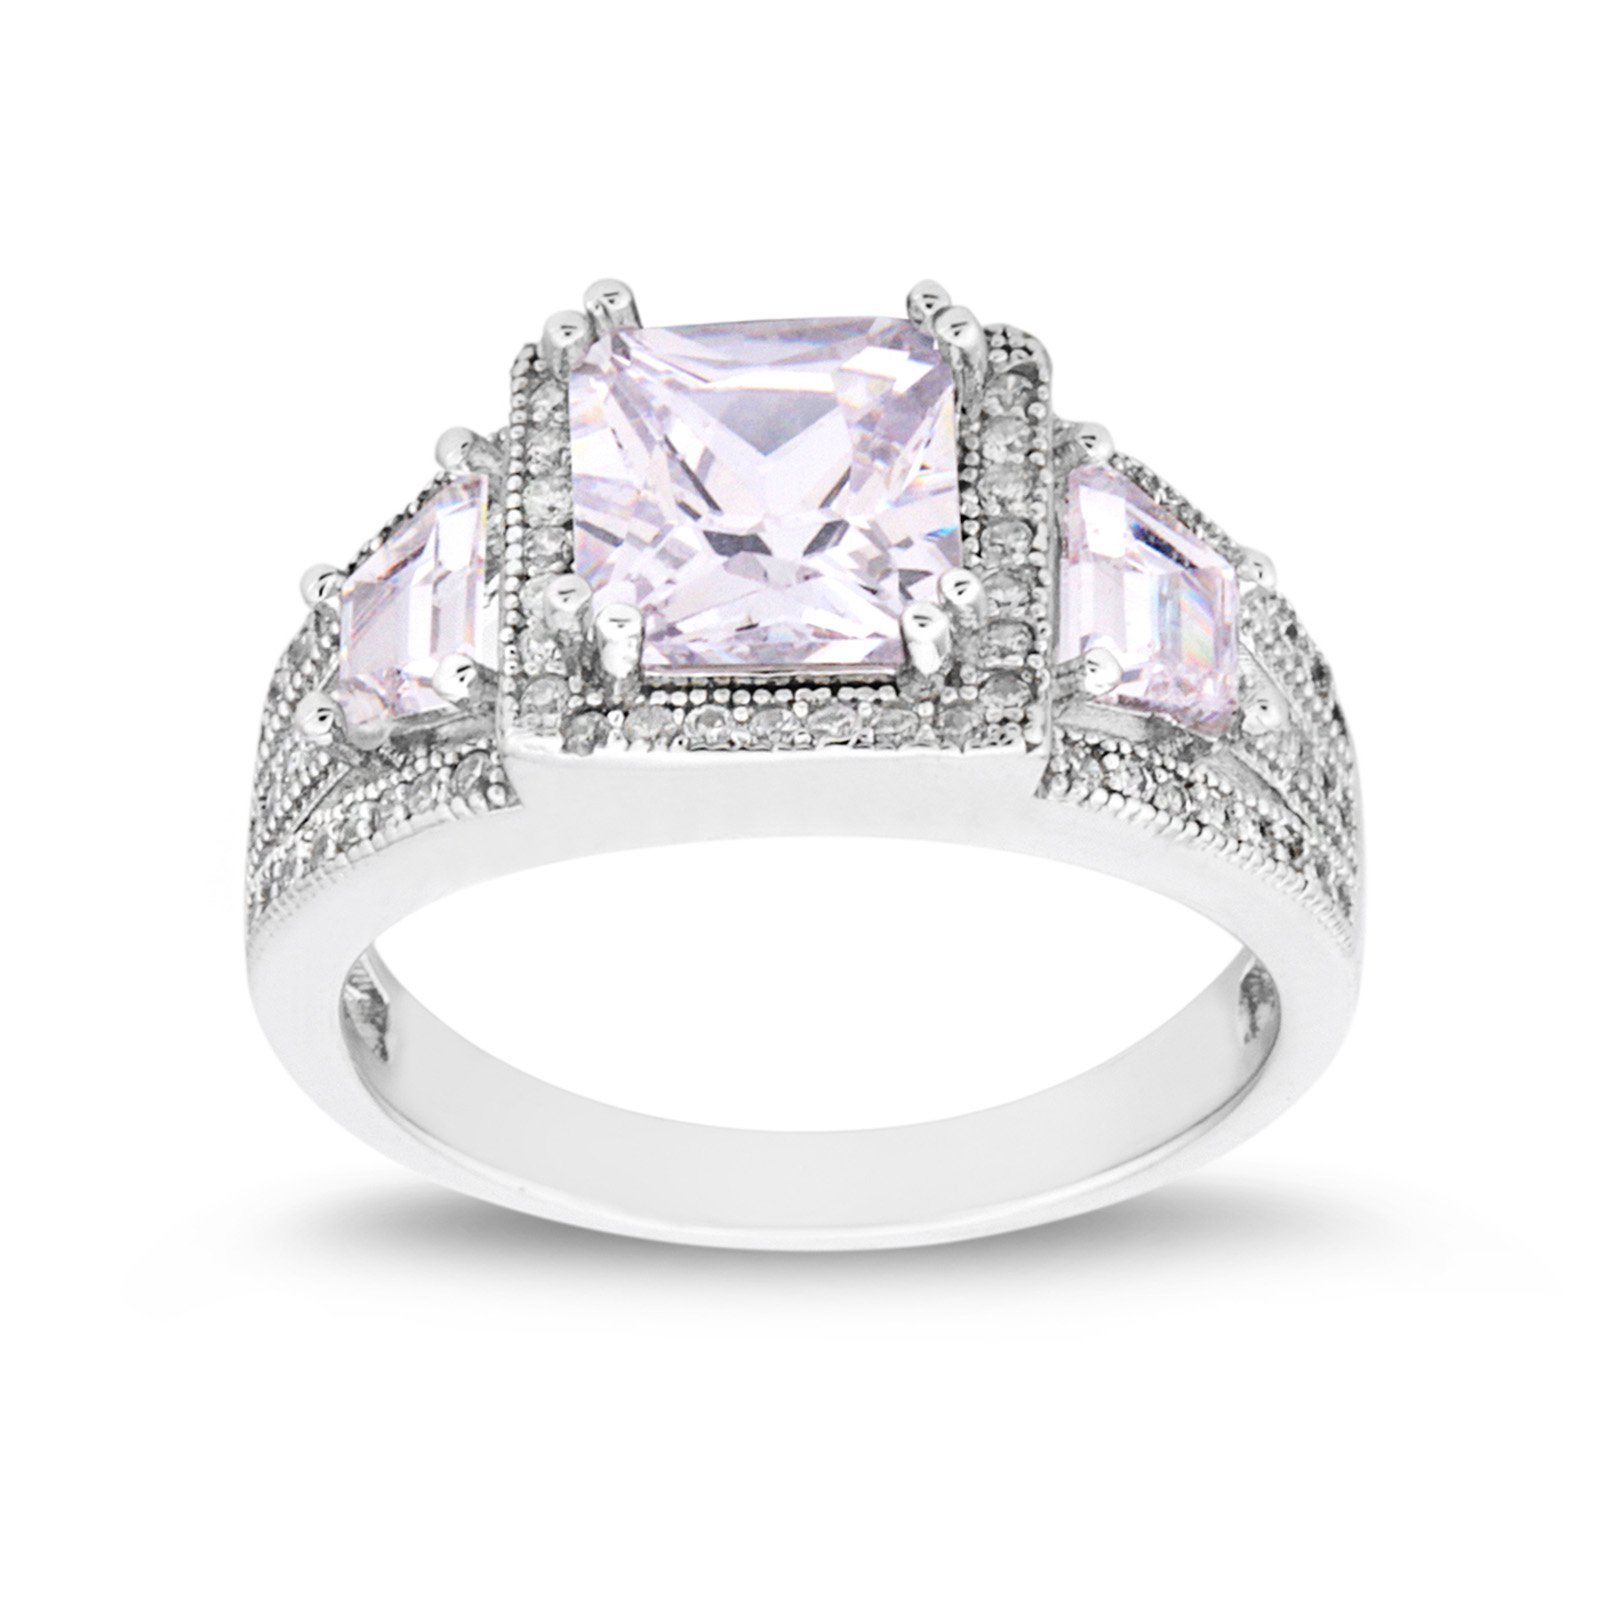 MESMER Rhodium Plated Vintage Style Square Cut CZ Wedding Engagement Rings